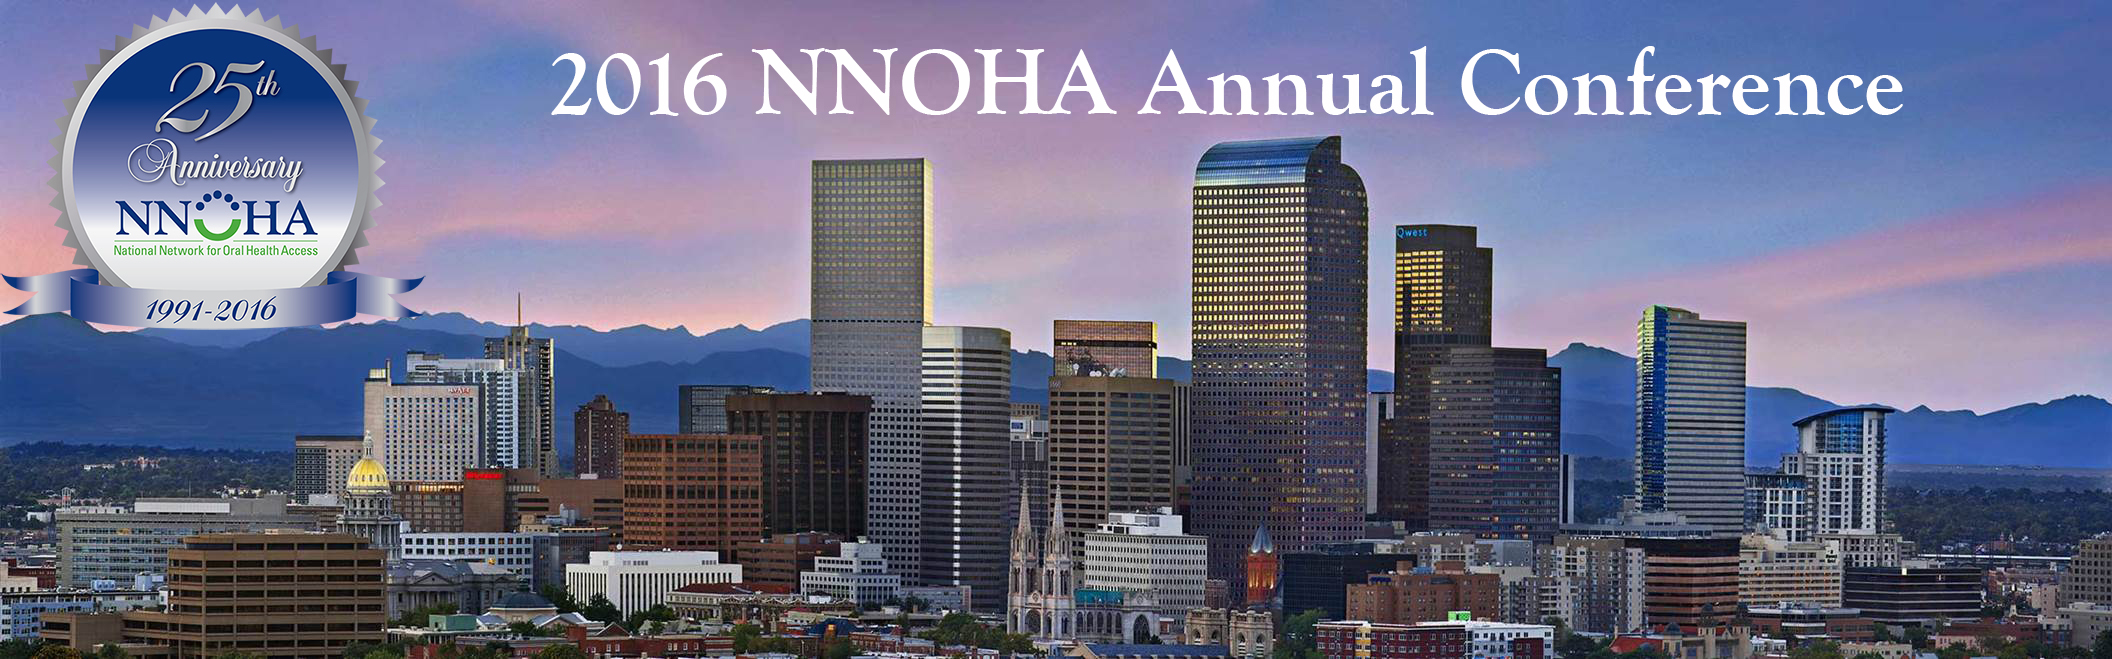 2016 NNOHA Annual Conference